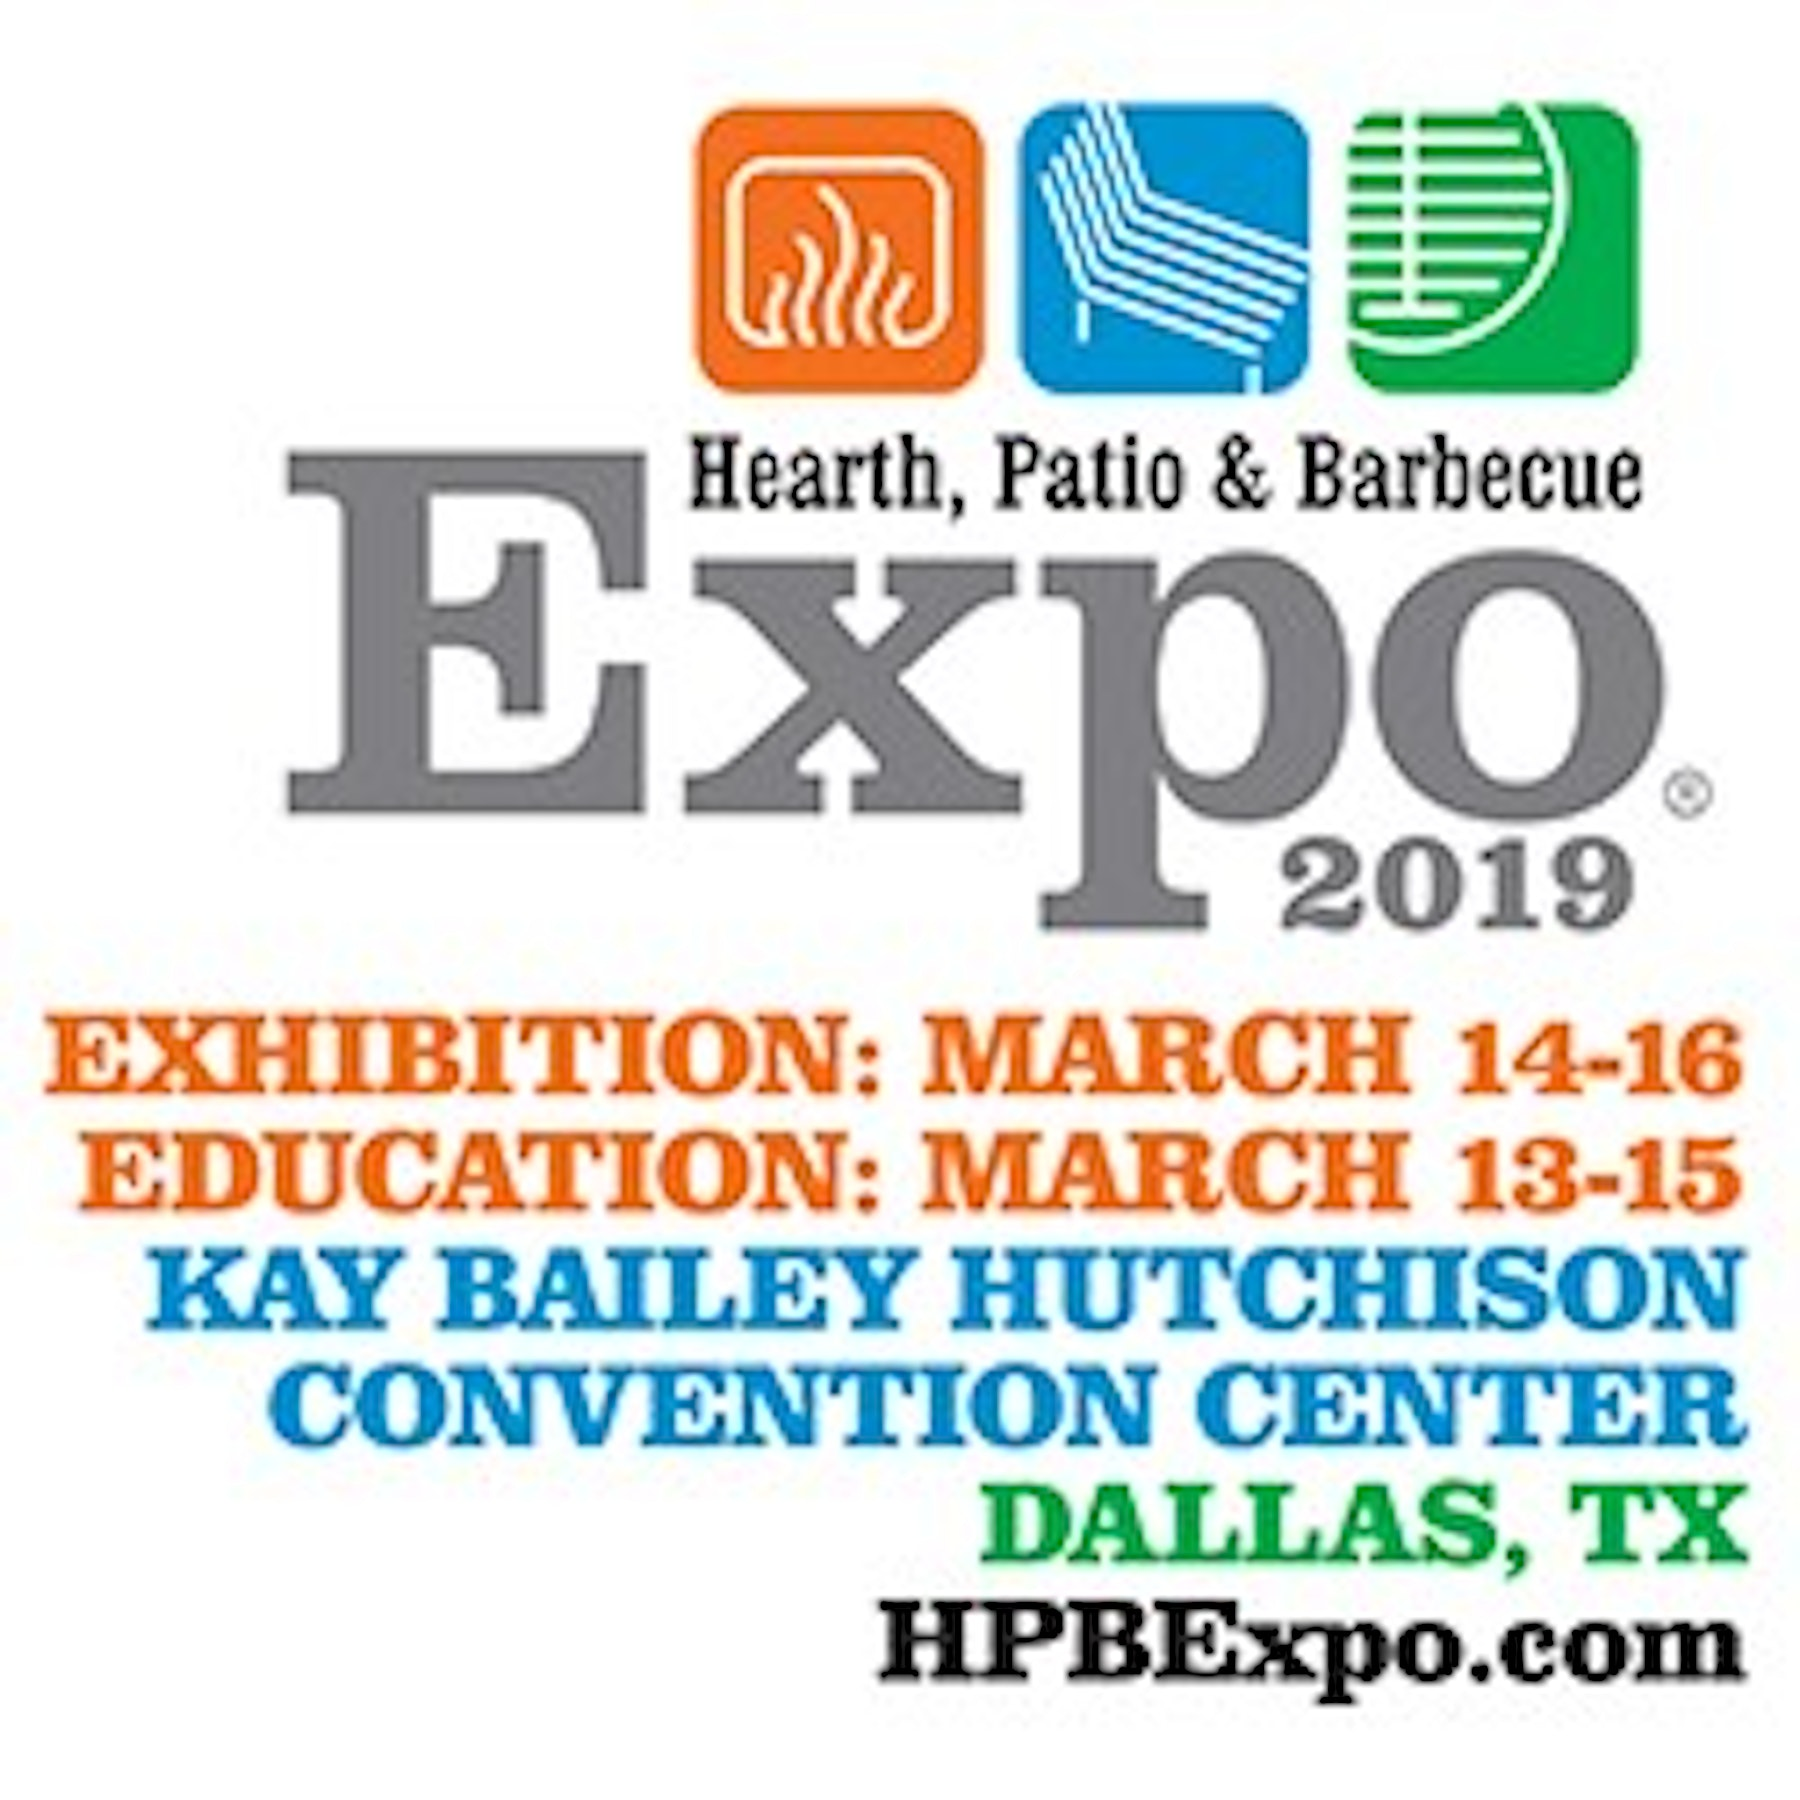 Hearth, Patio & Barbecue Expo 2019 Logo